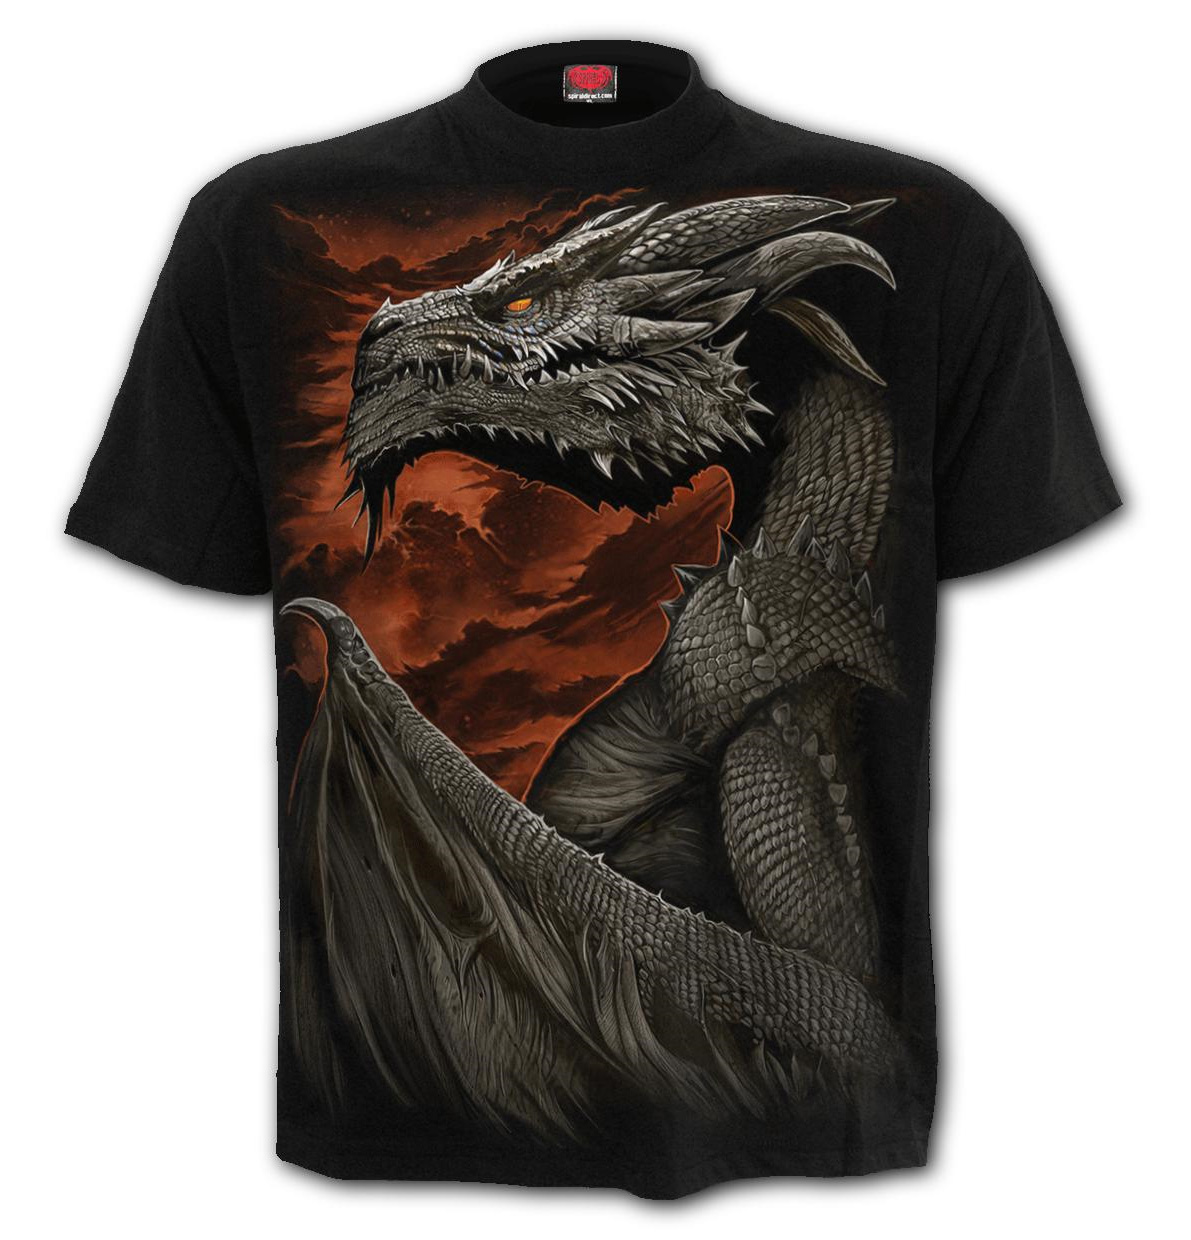 SPIRAL-Direct-Unisex-T-Shirt-Biker-Goth-MAJESTIC-DRACO-Dragon-All-Sizes thumbnail 7